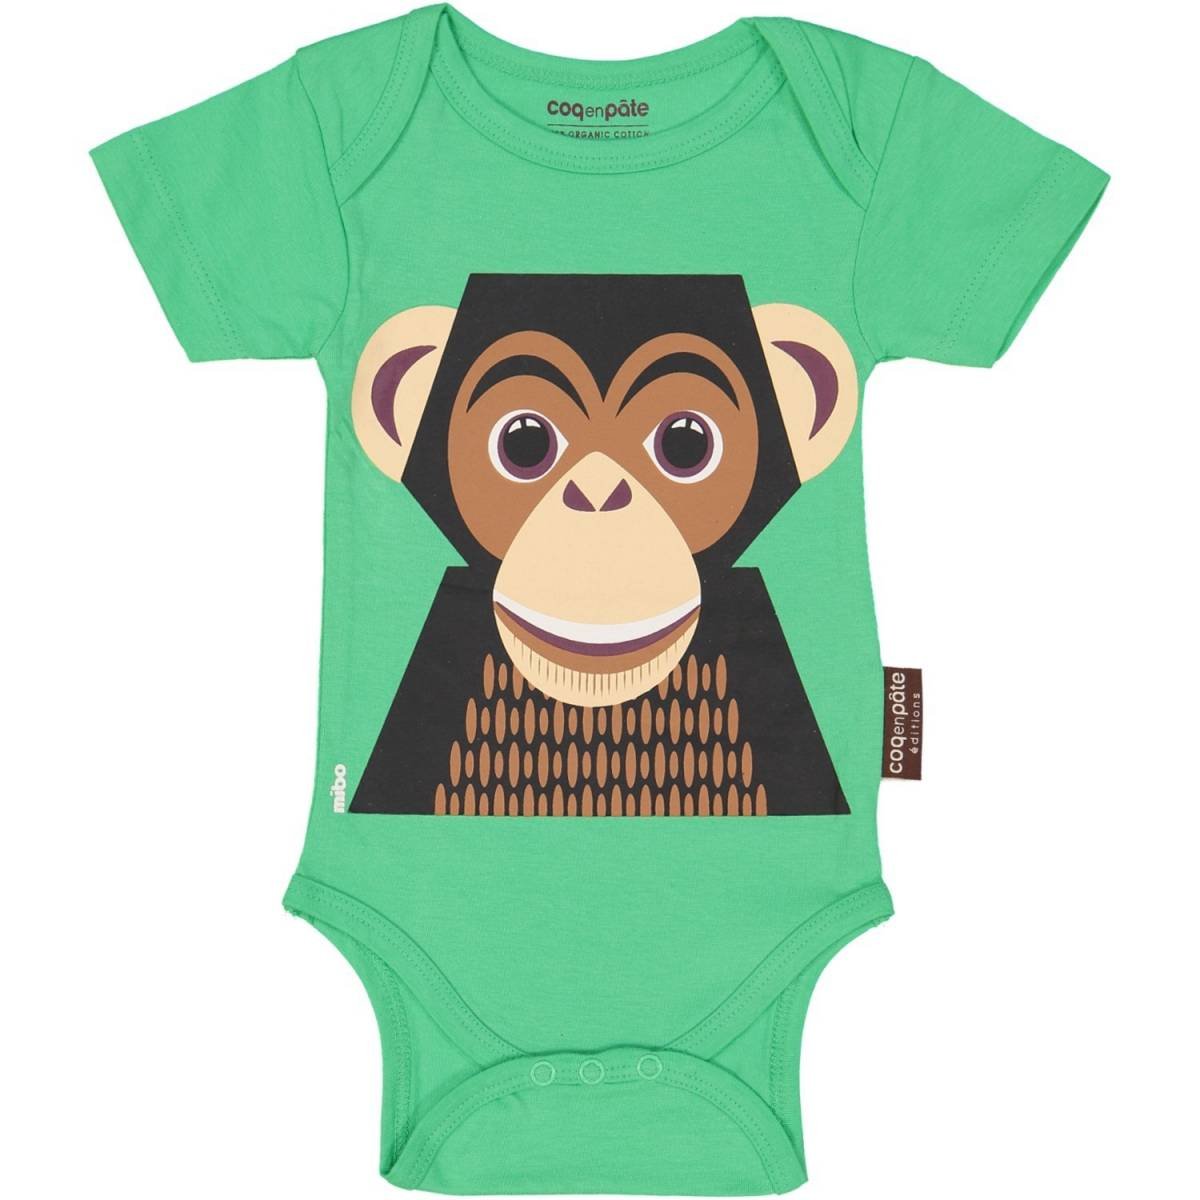 Chimpanzee short sleeved body